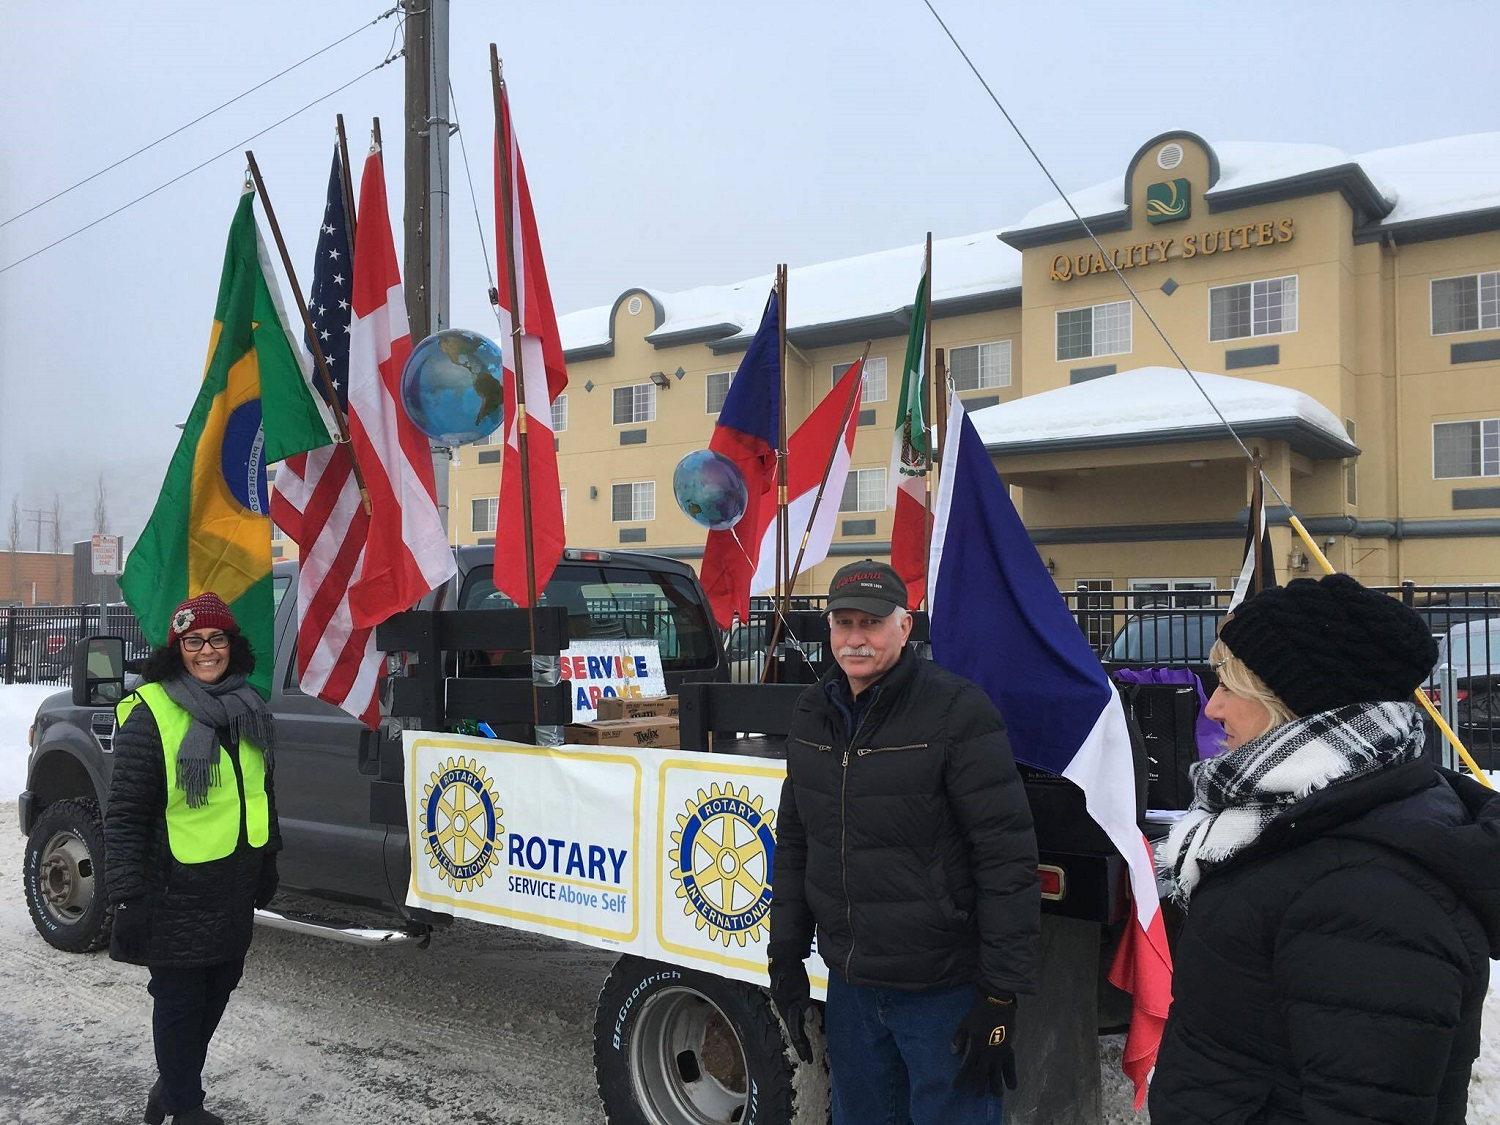 Julie with Rotary Float